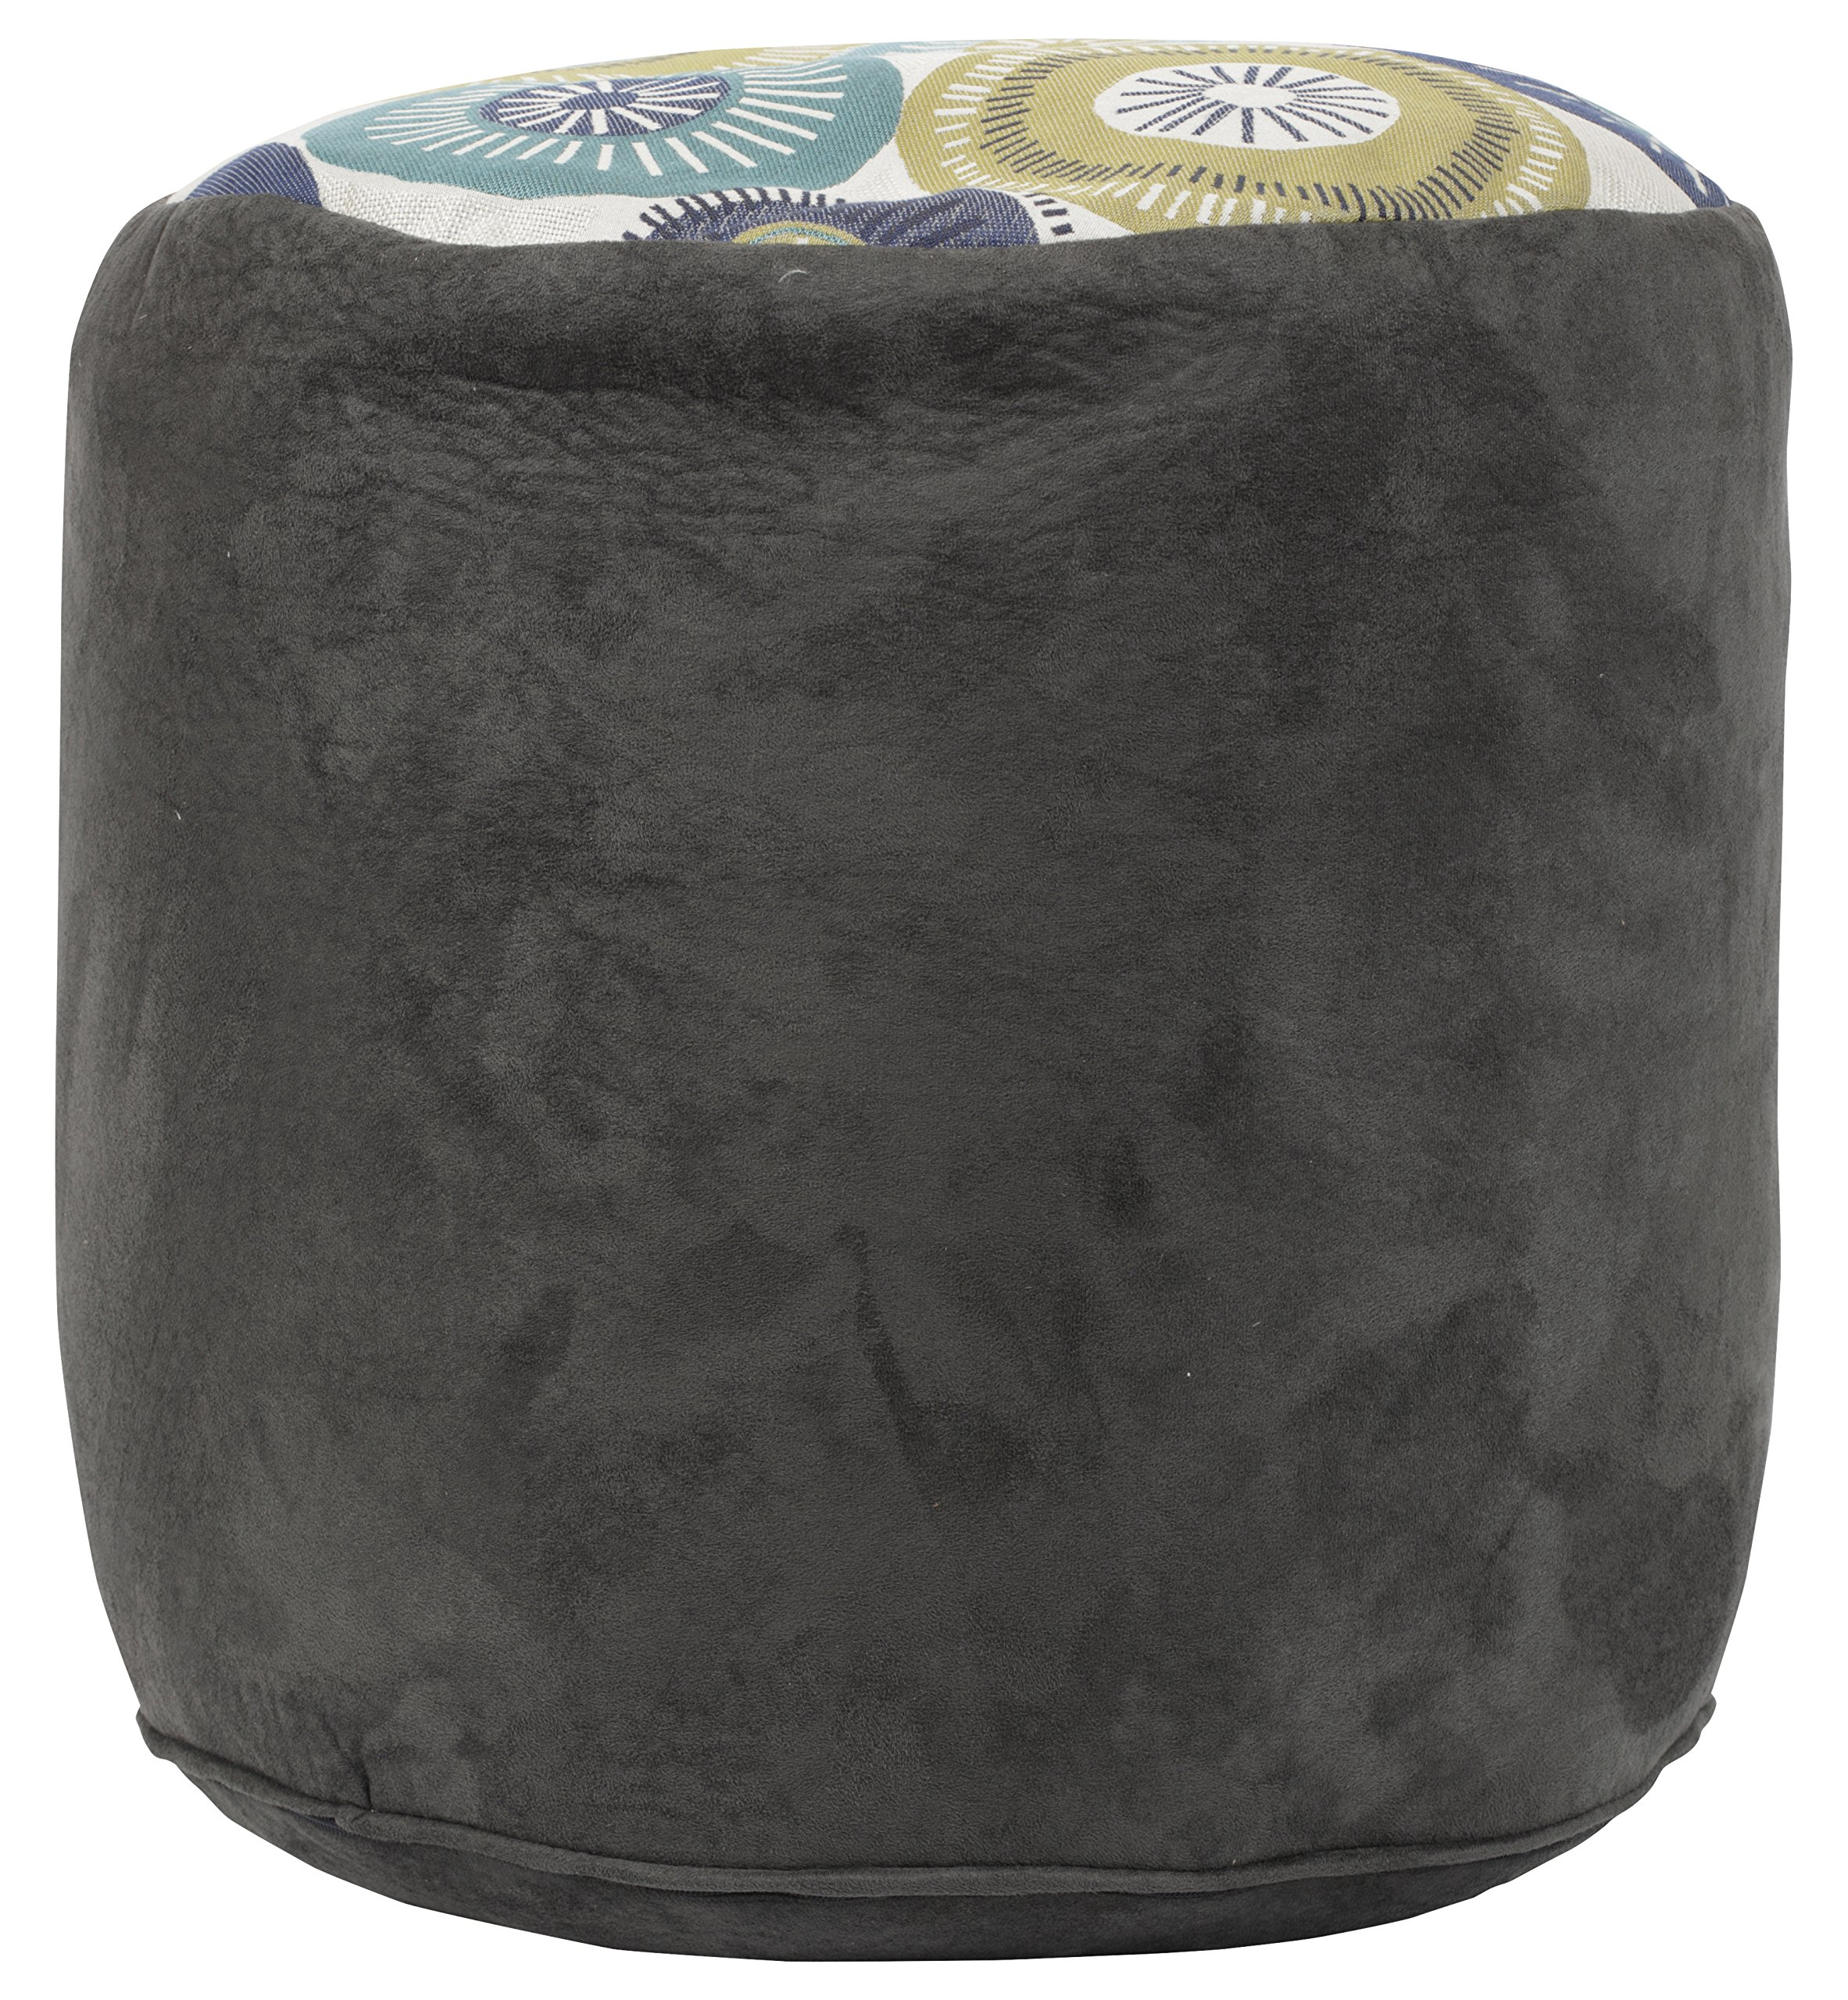 American Furniture Classics Pinwheel Tapestry Pouf Ottoman, Grey